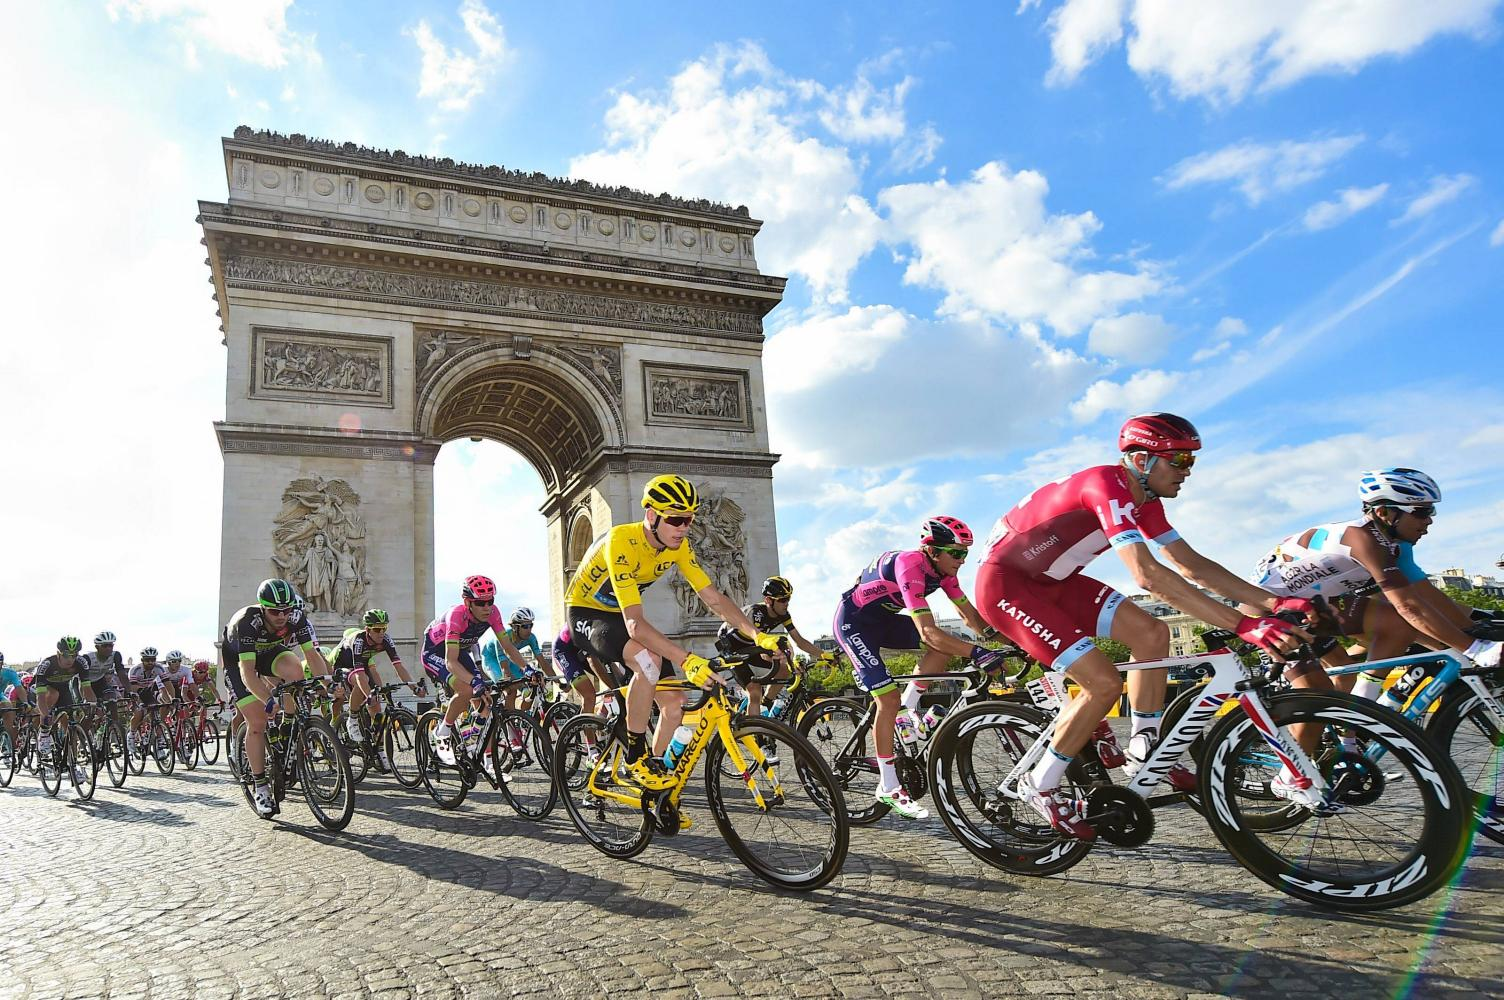 Tour de France - Tour de France - PJAMM Cycling Grand Tour Page